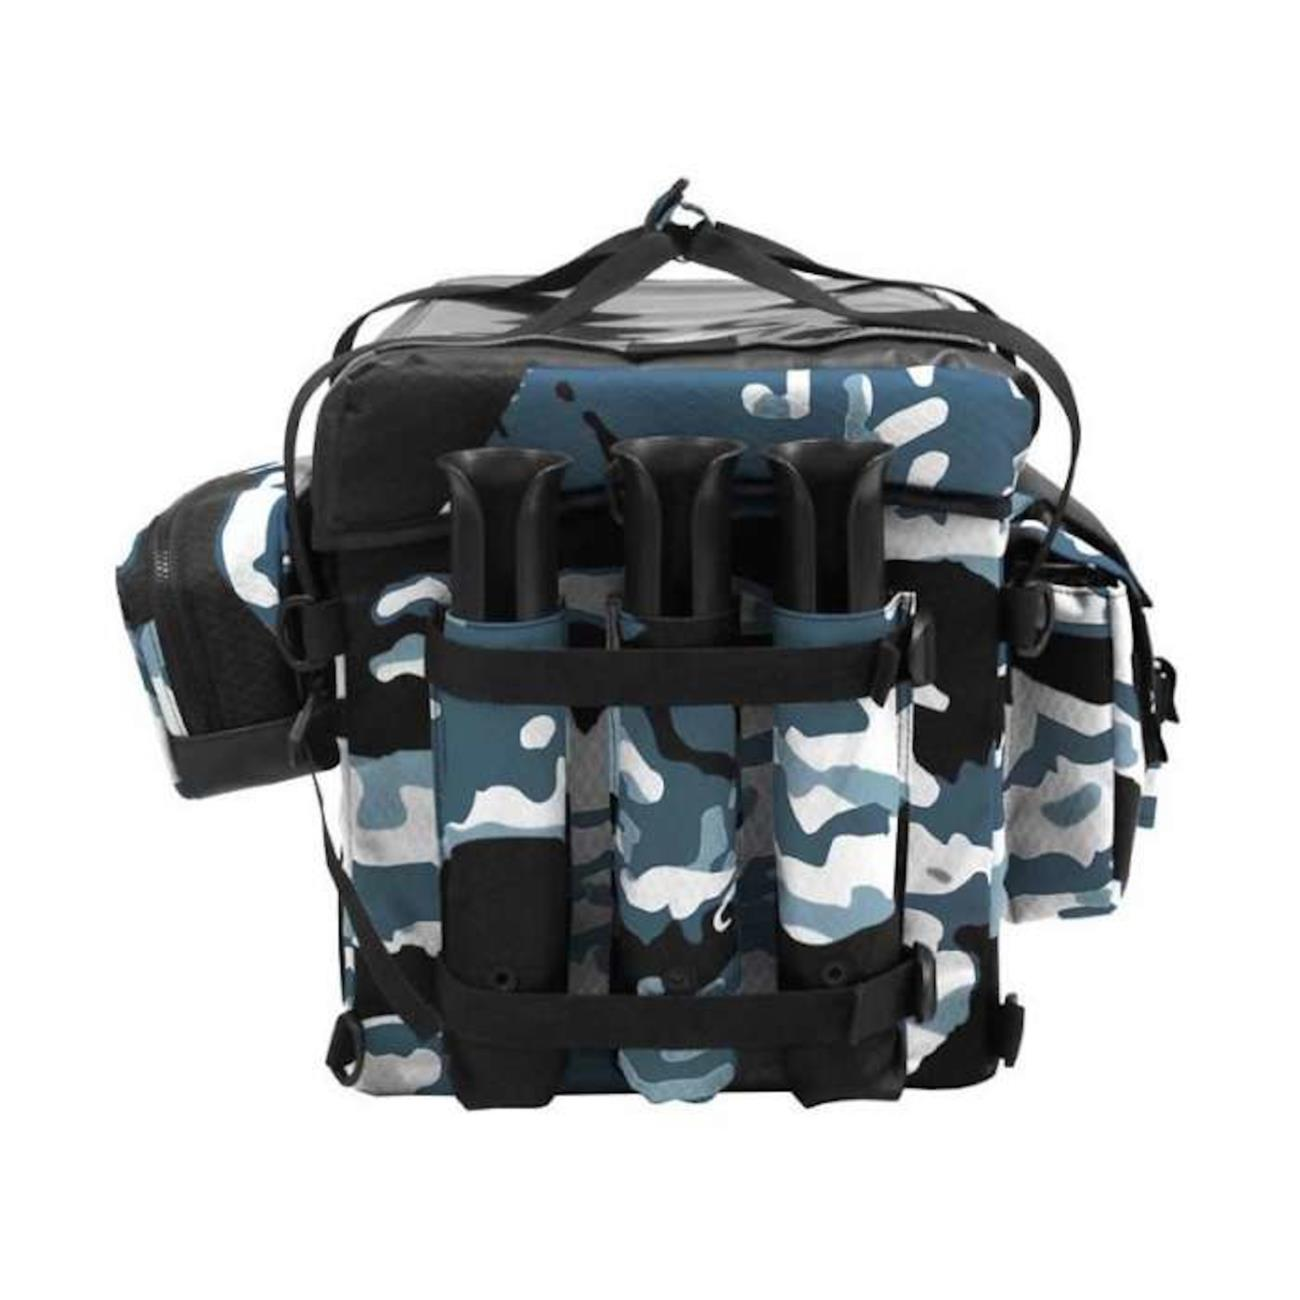 https://feelfreekayak.eu/1102-small_default/crate-bag.jpg